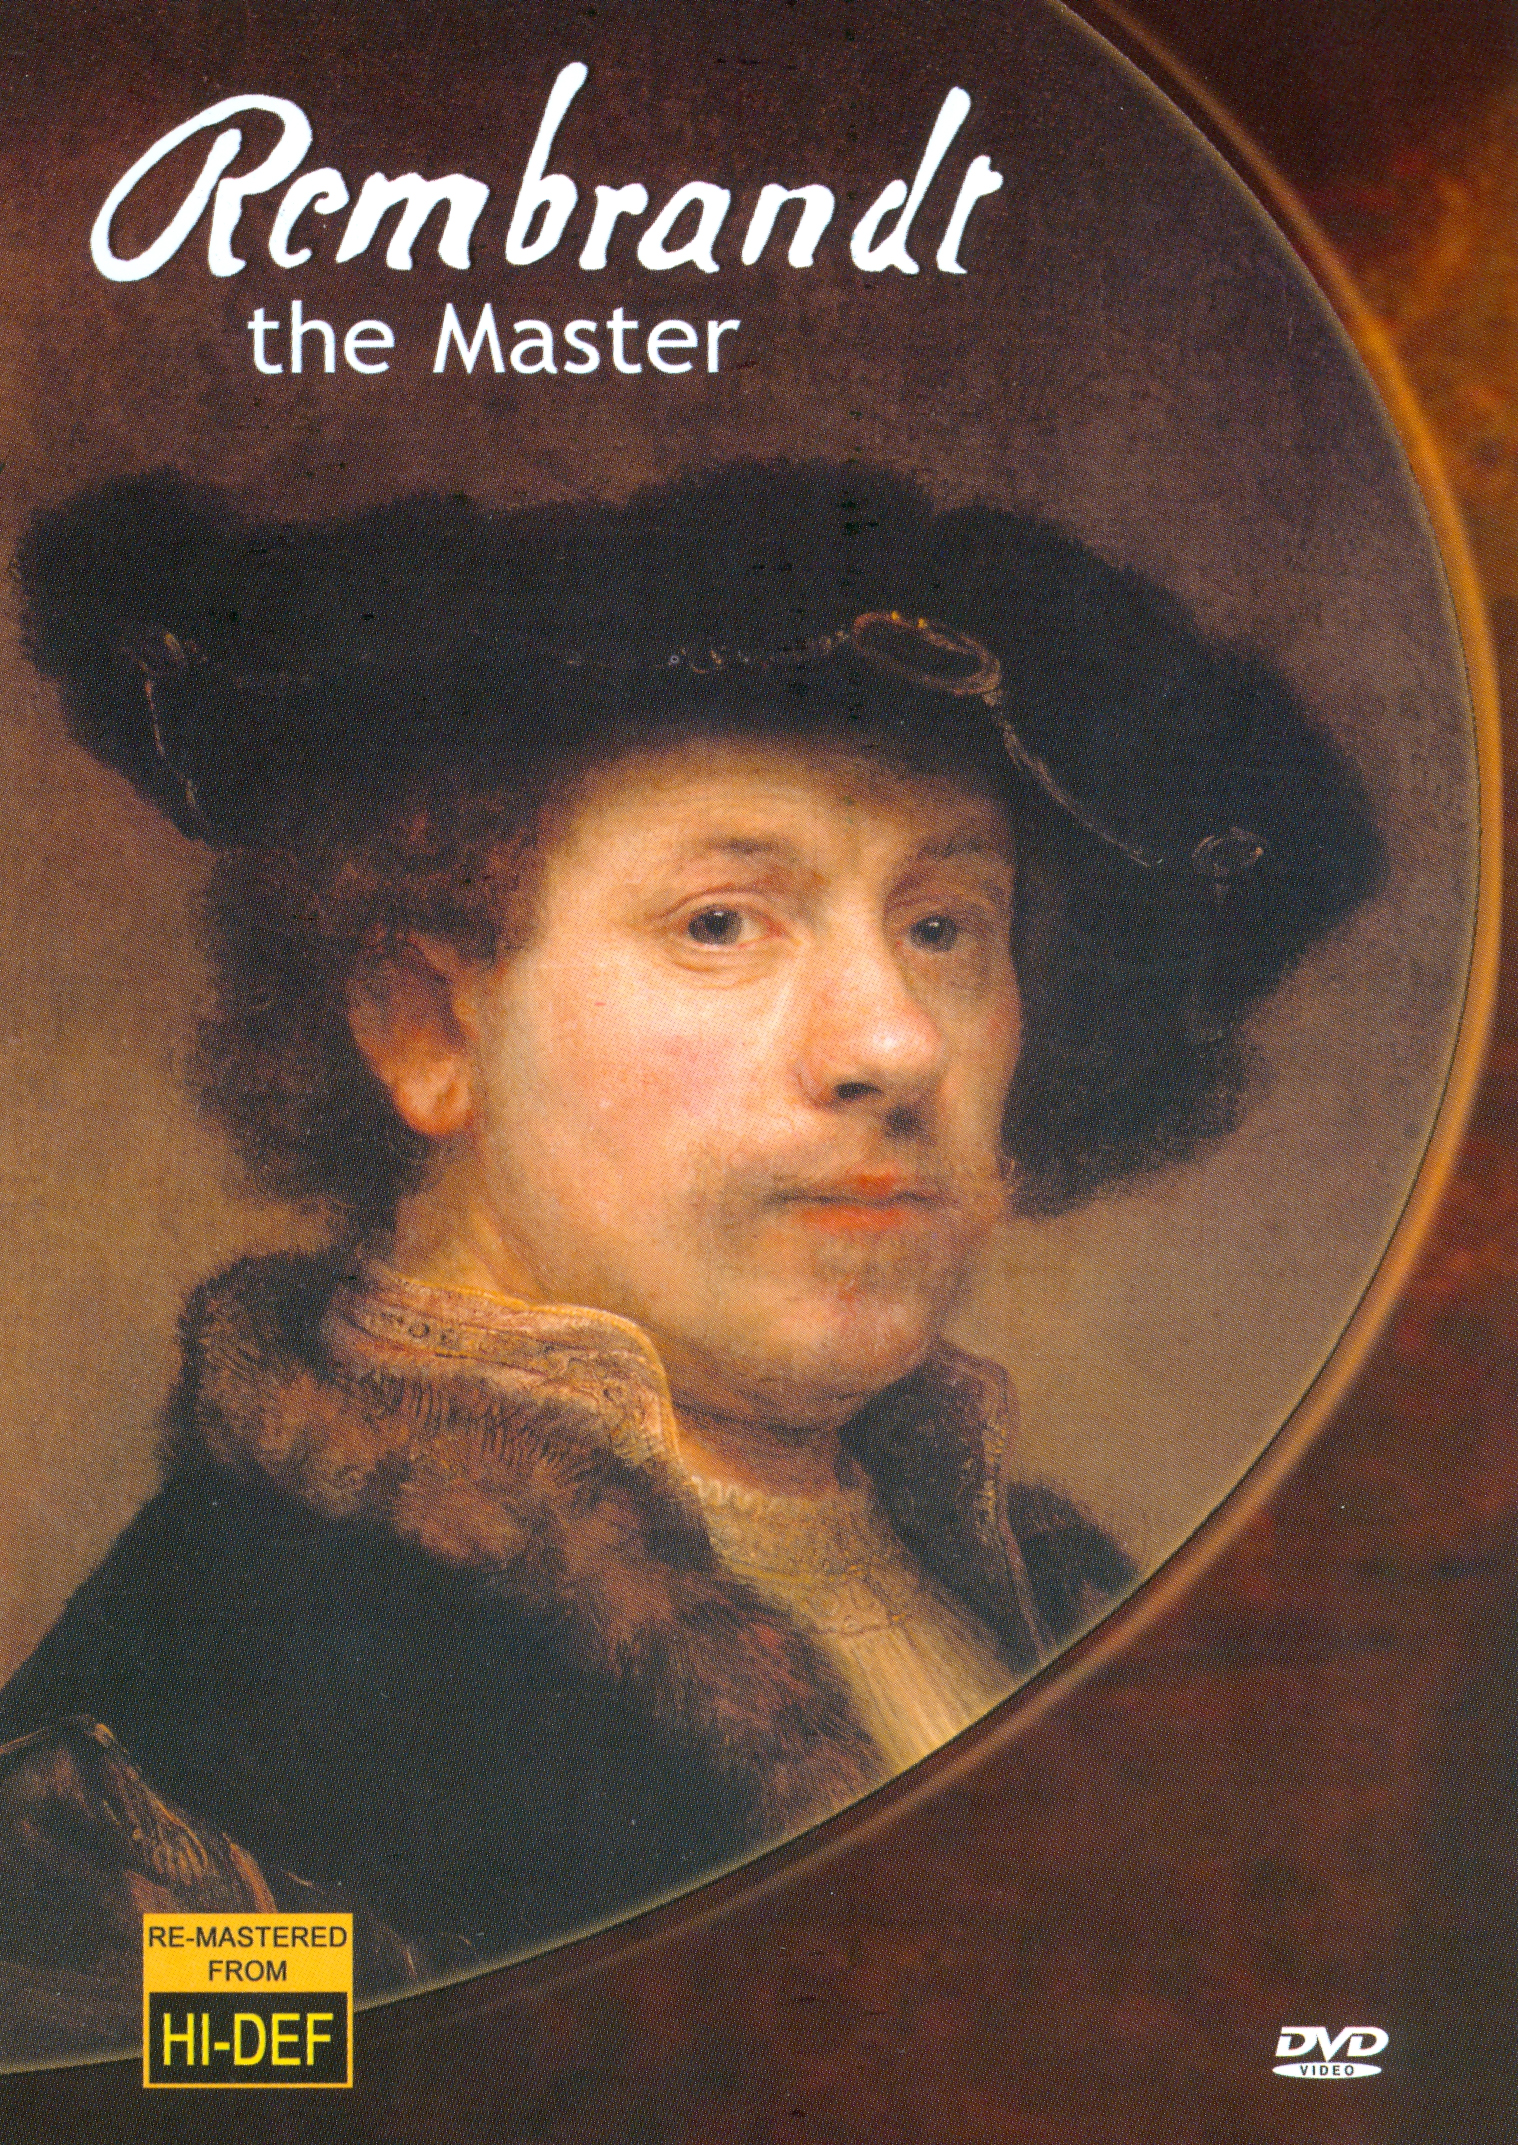 Rembrandt: The Master